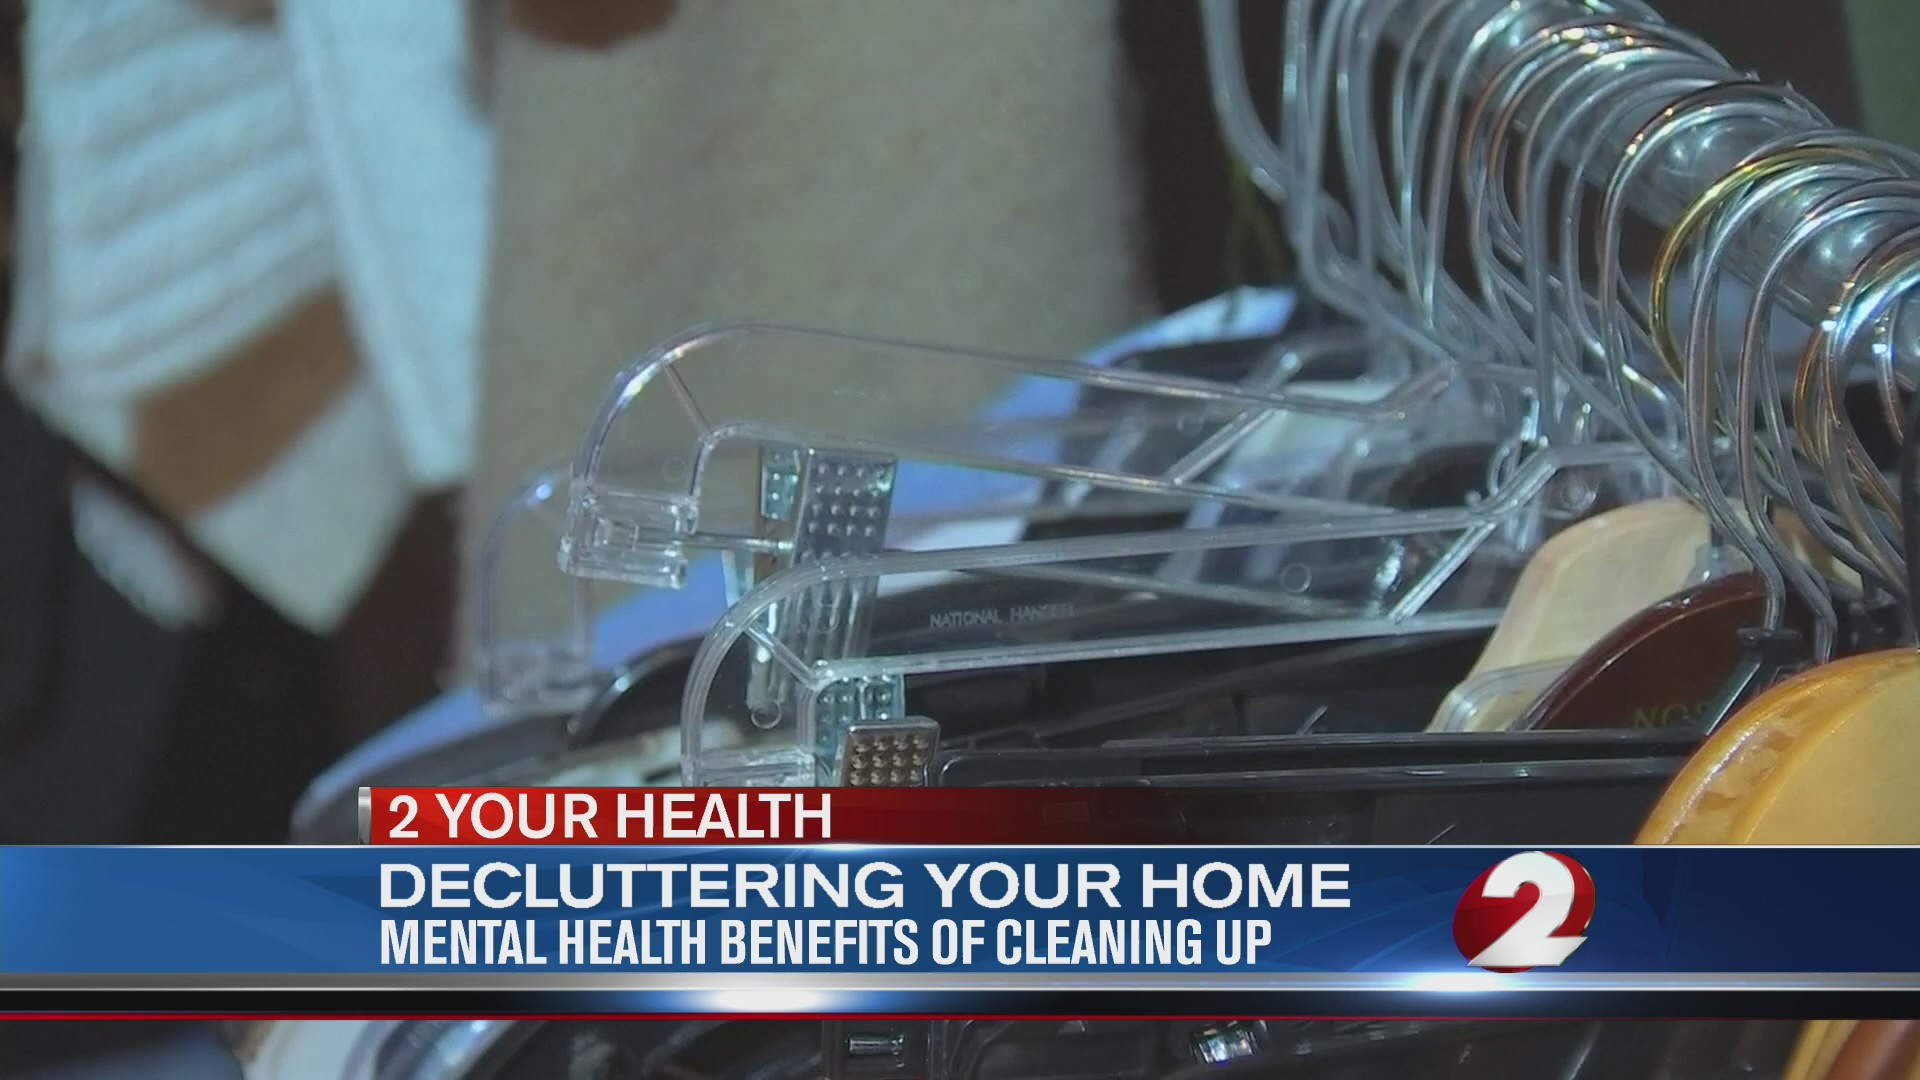 Mental health benefits of cleaning up